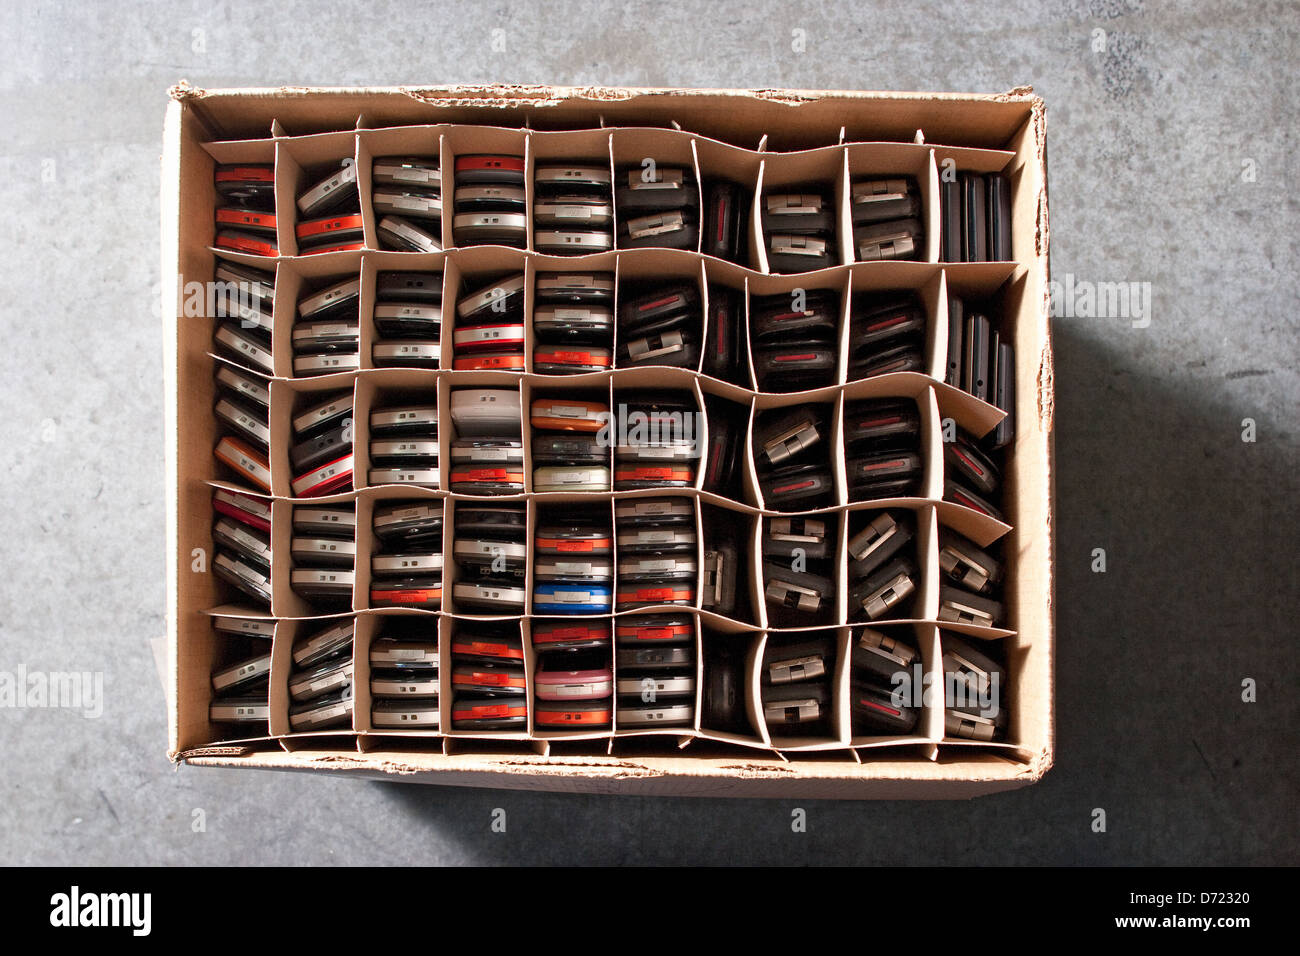 Box of recycled and refurbished cell phones packed and ready for shipping. - Stock Image